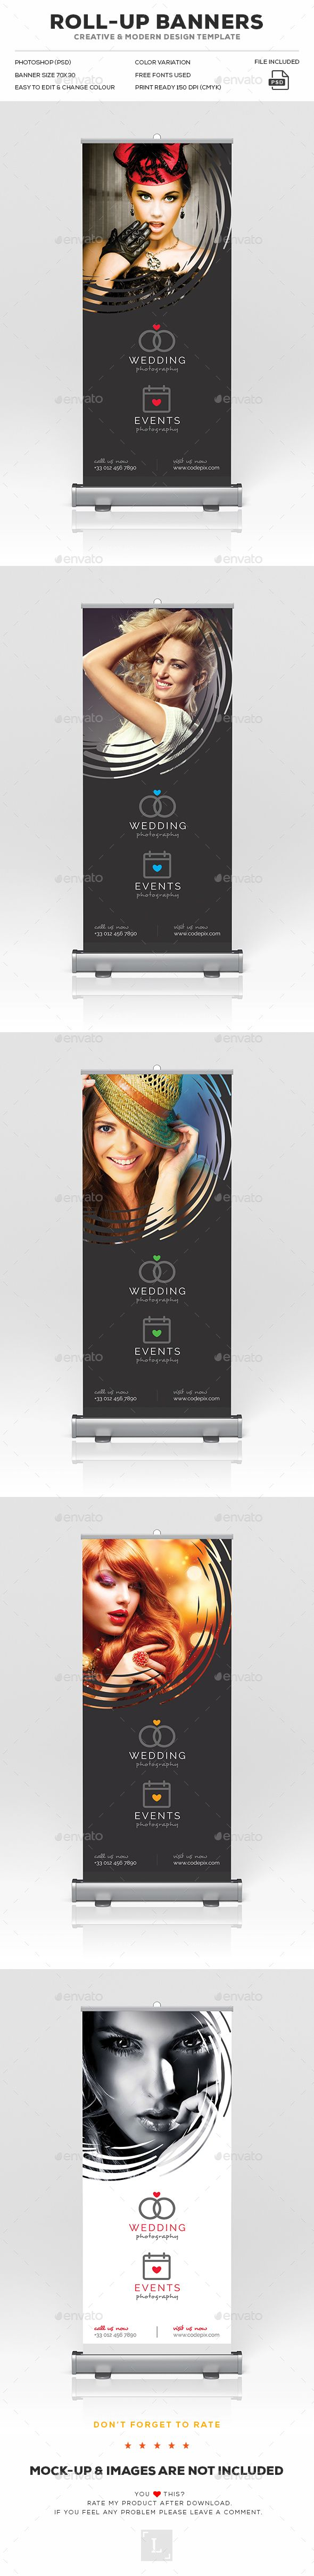 Design a banner to print - Photography Roll Up Banner Roll Up Designrollup Bannerprint